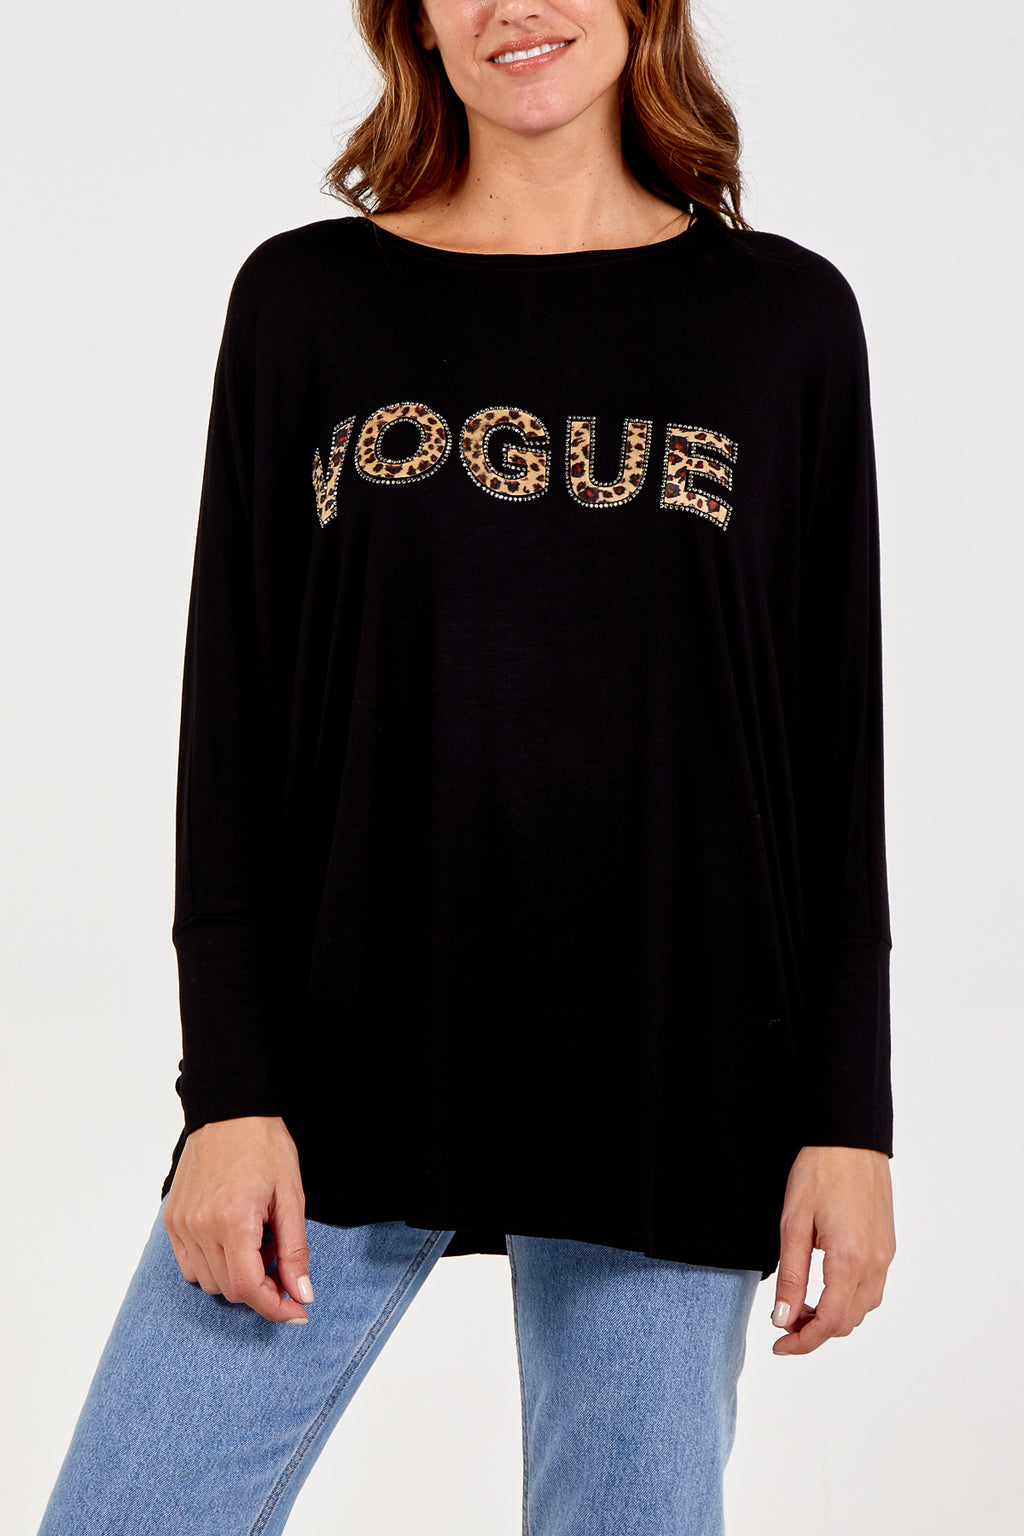 Oversized Leopard Vogue Diamante Top